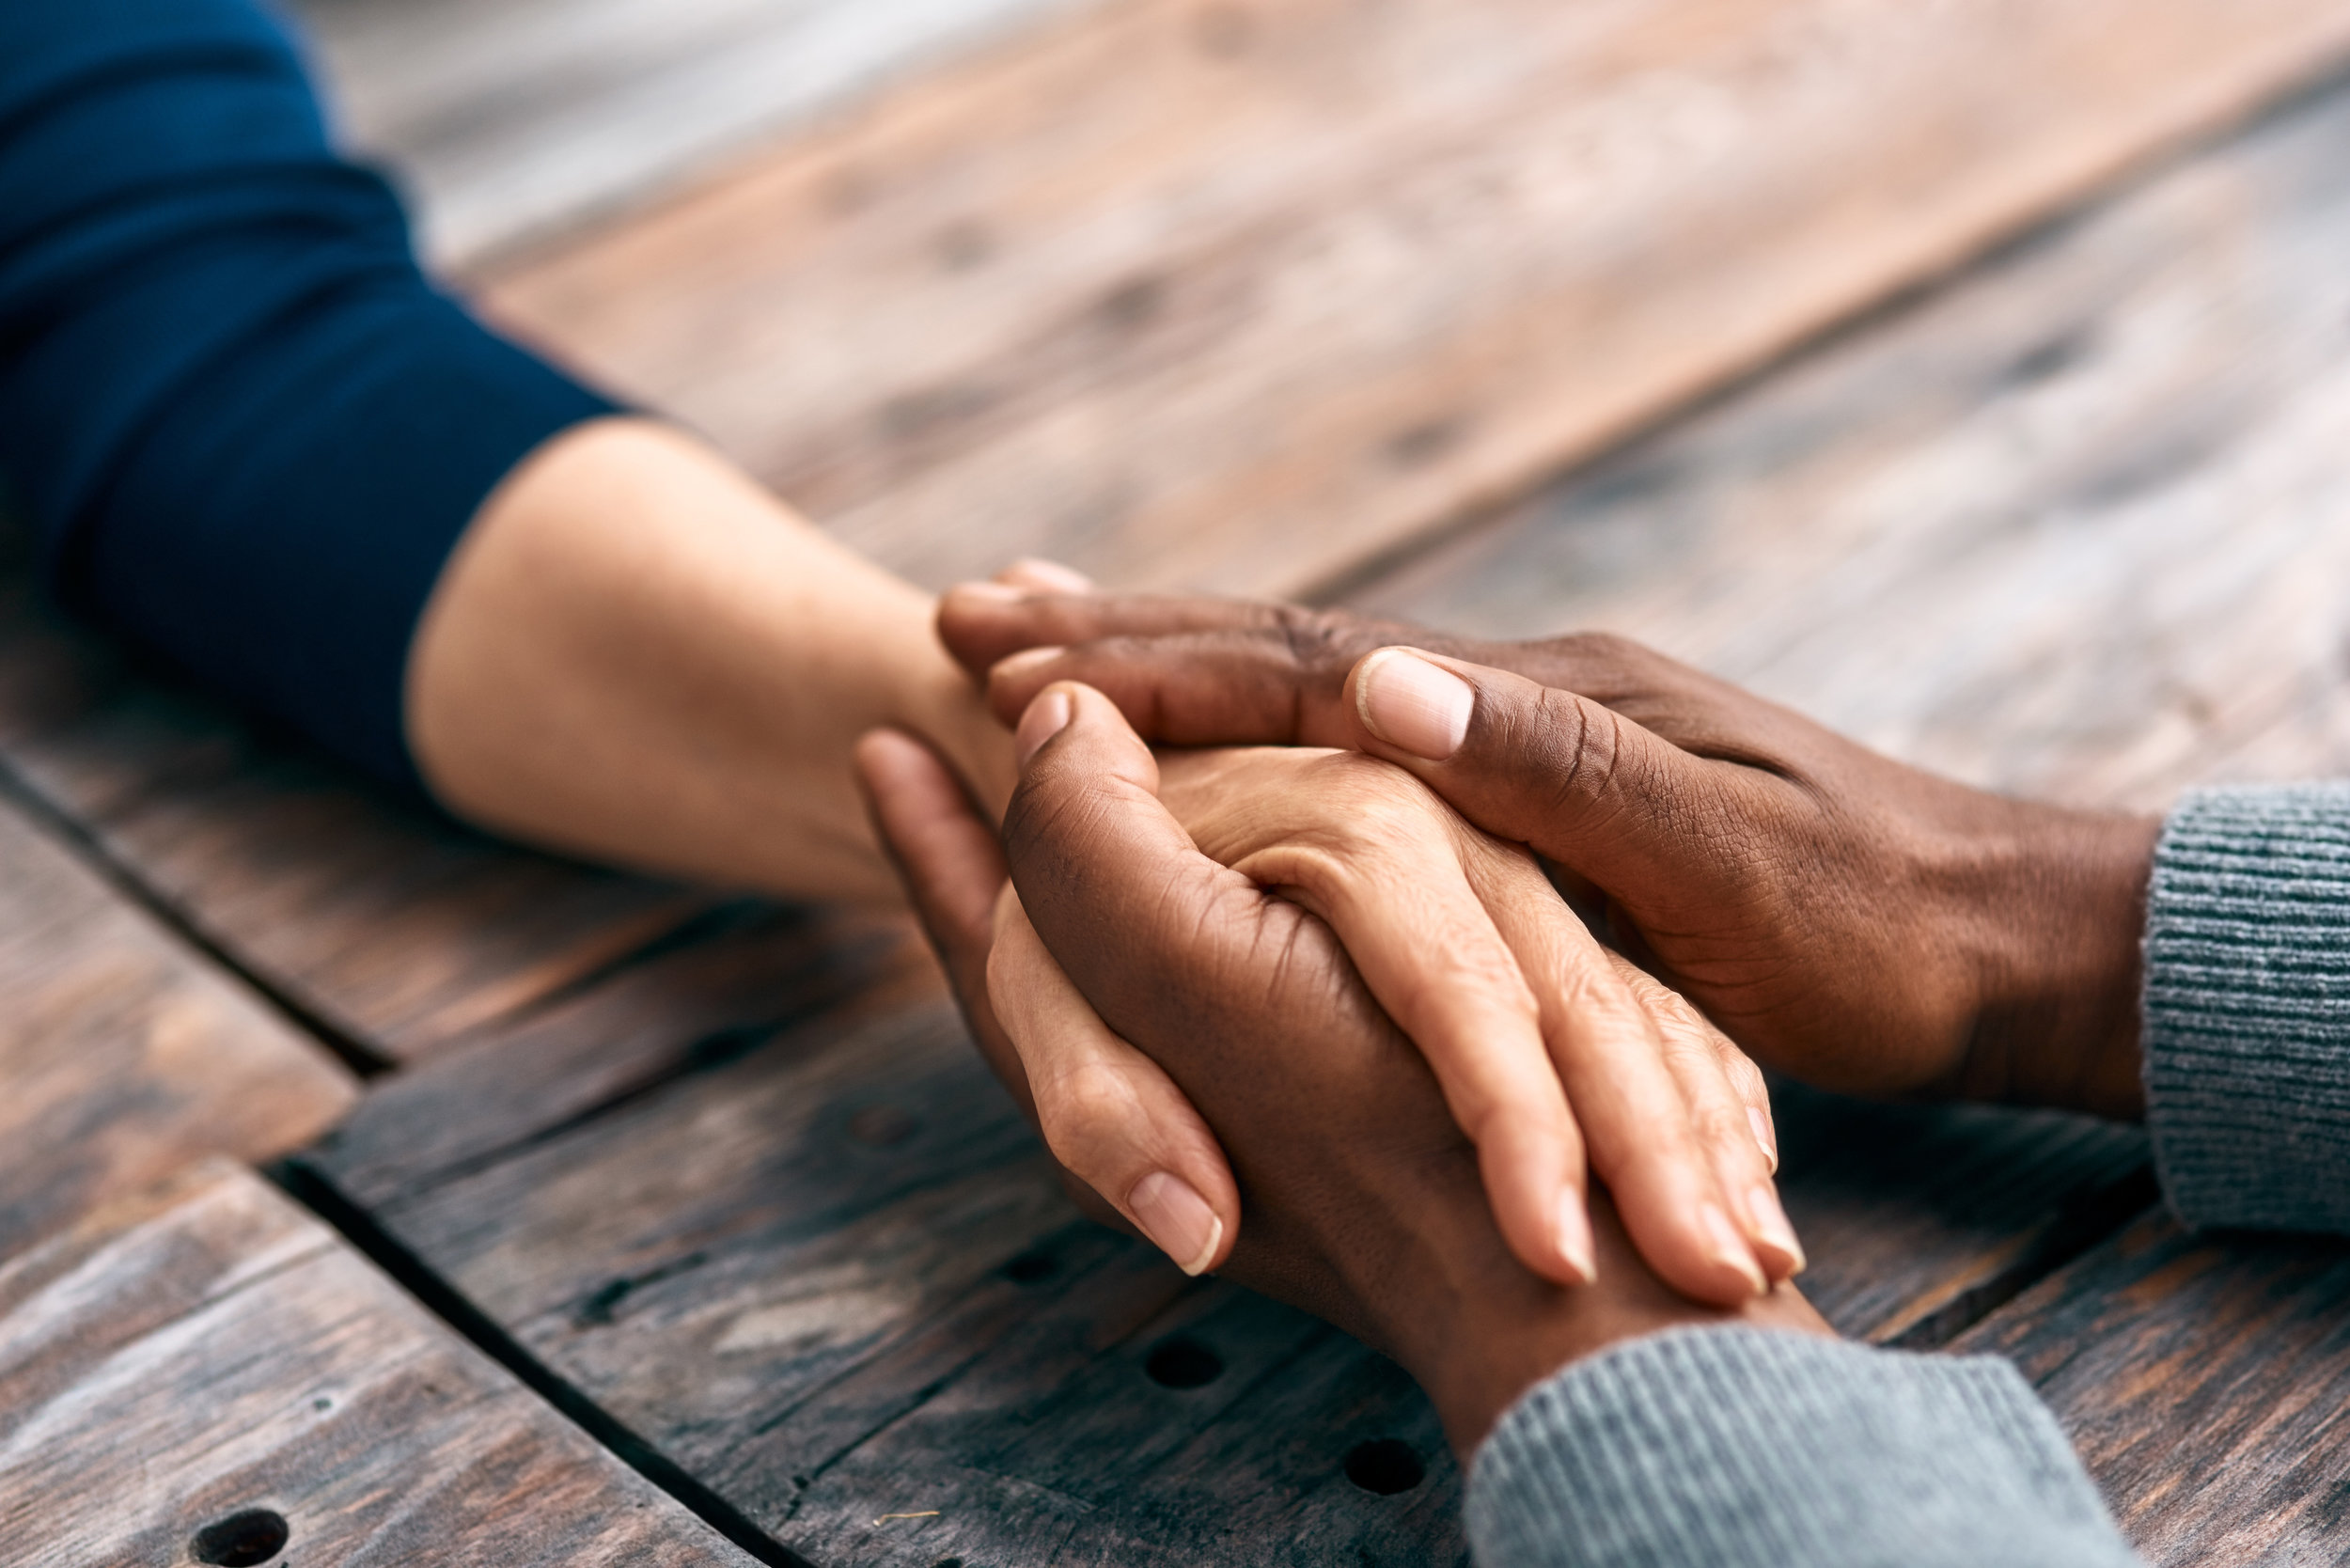 PRACTICING EMPATHY - EMPATHY FOR OTHERS MUST BEGIN WITHIN